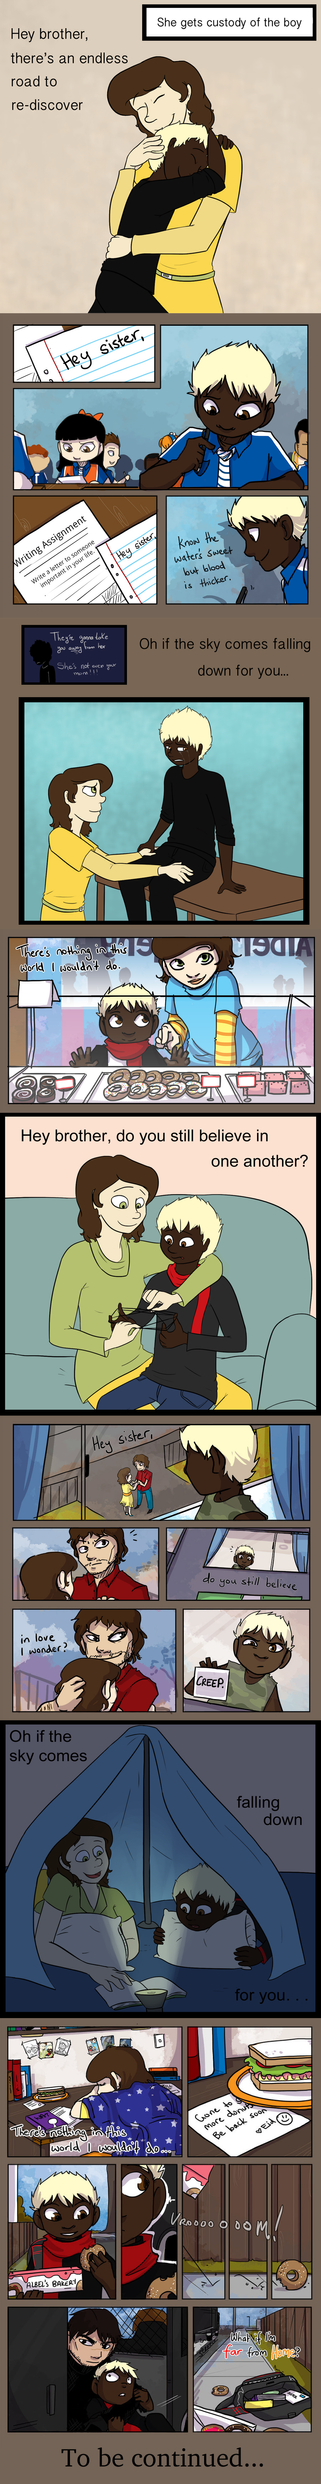 Hey Brother, Hey Sister (part 1) by Marleepup